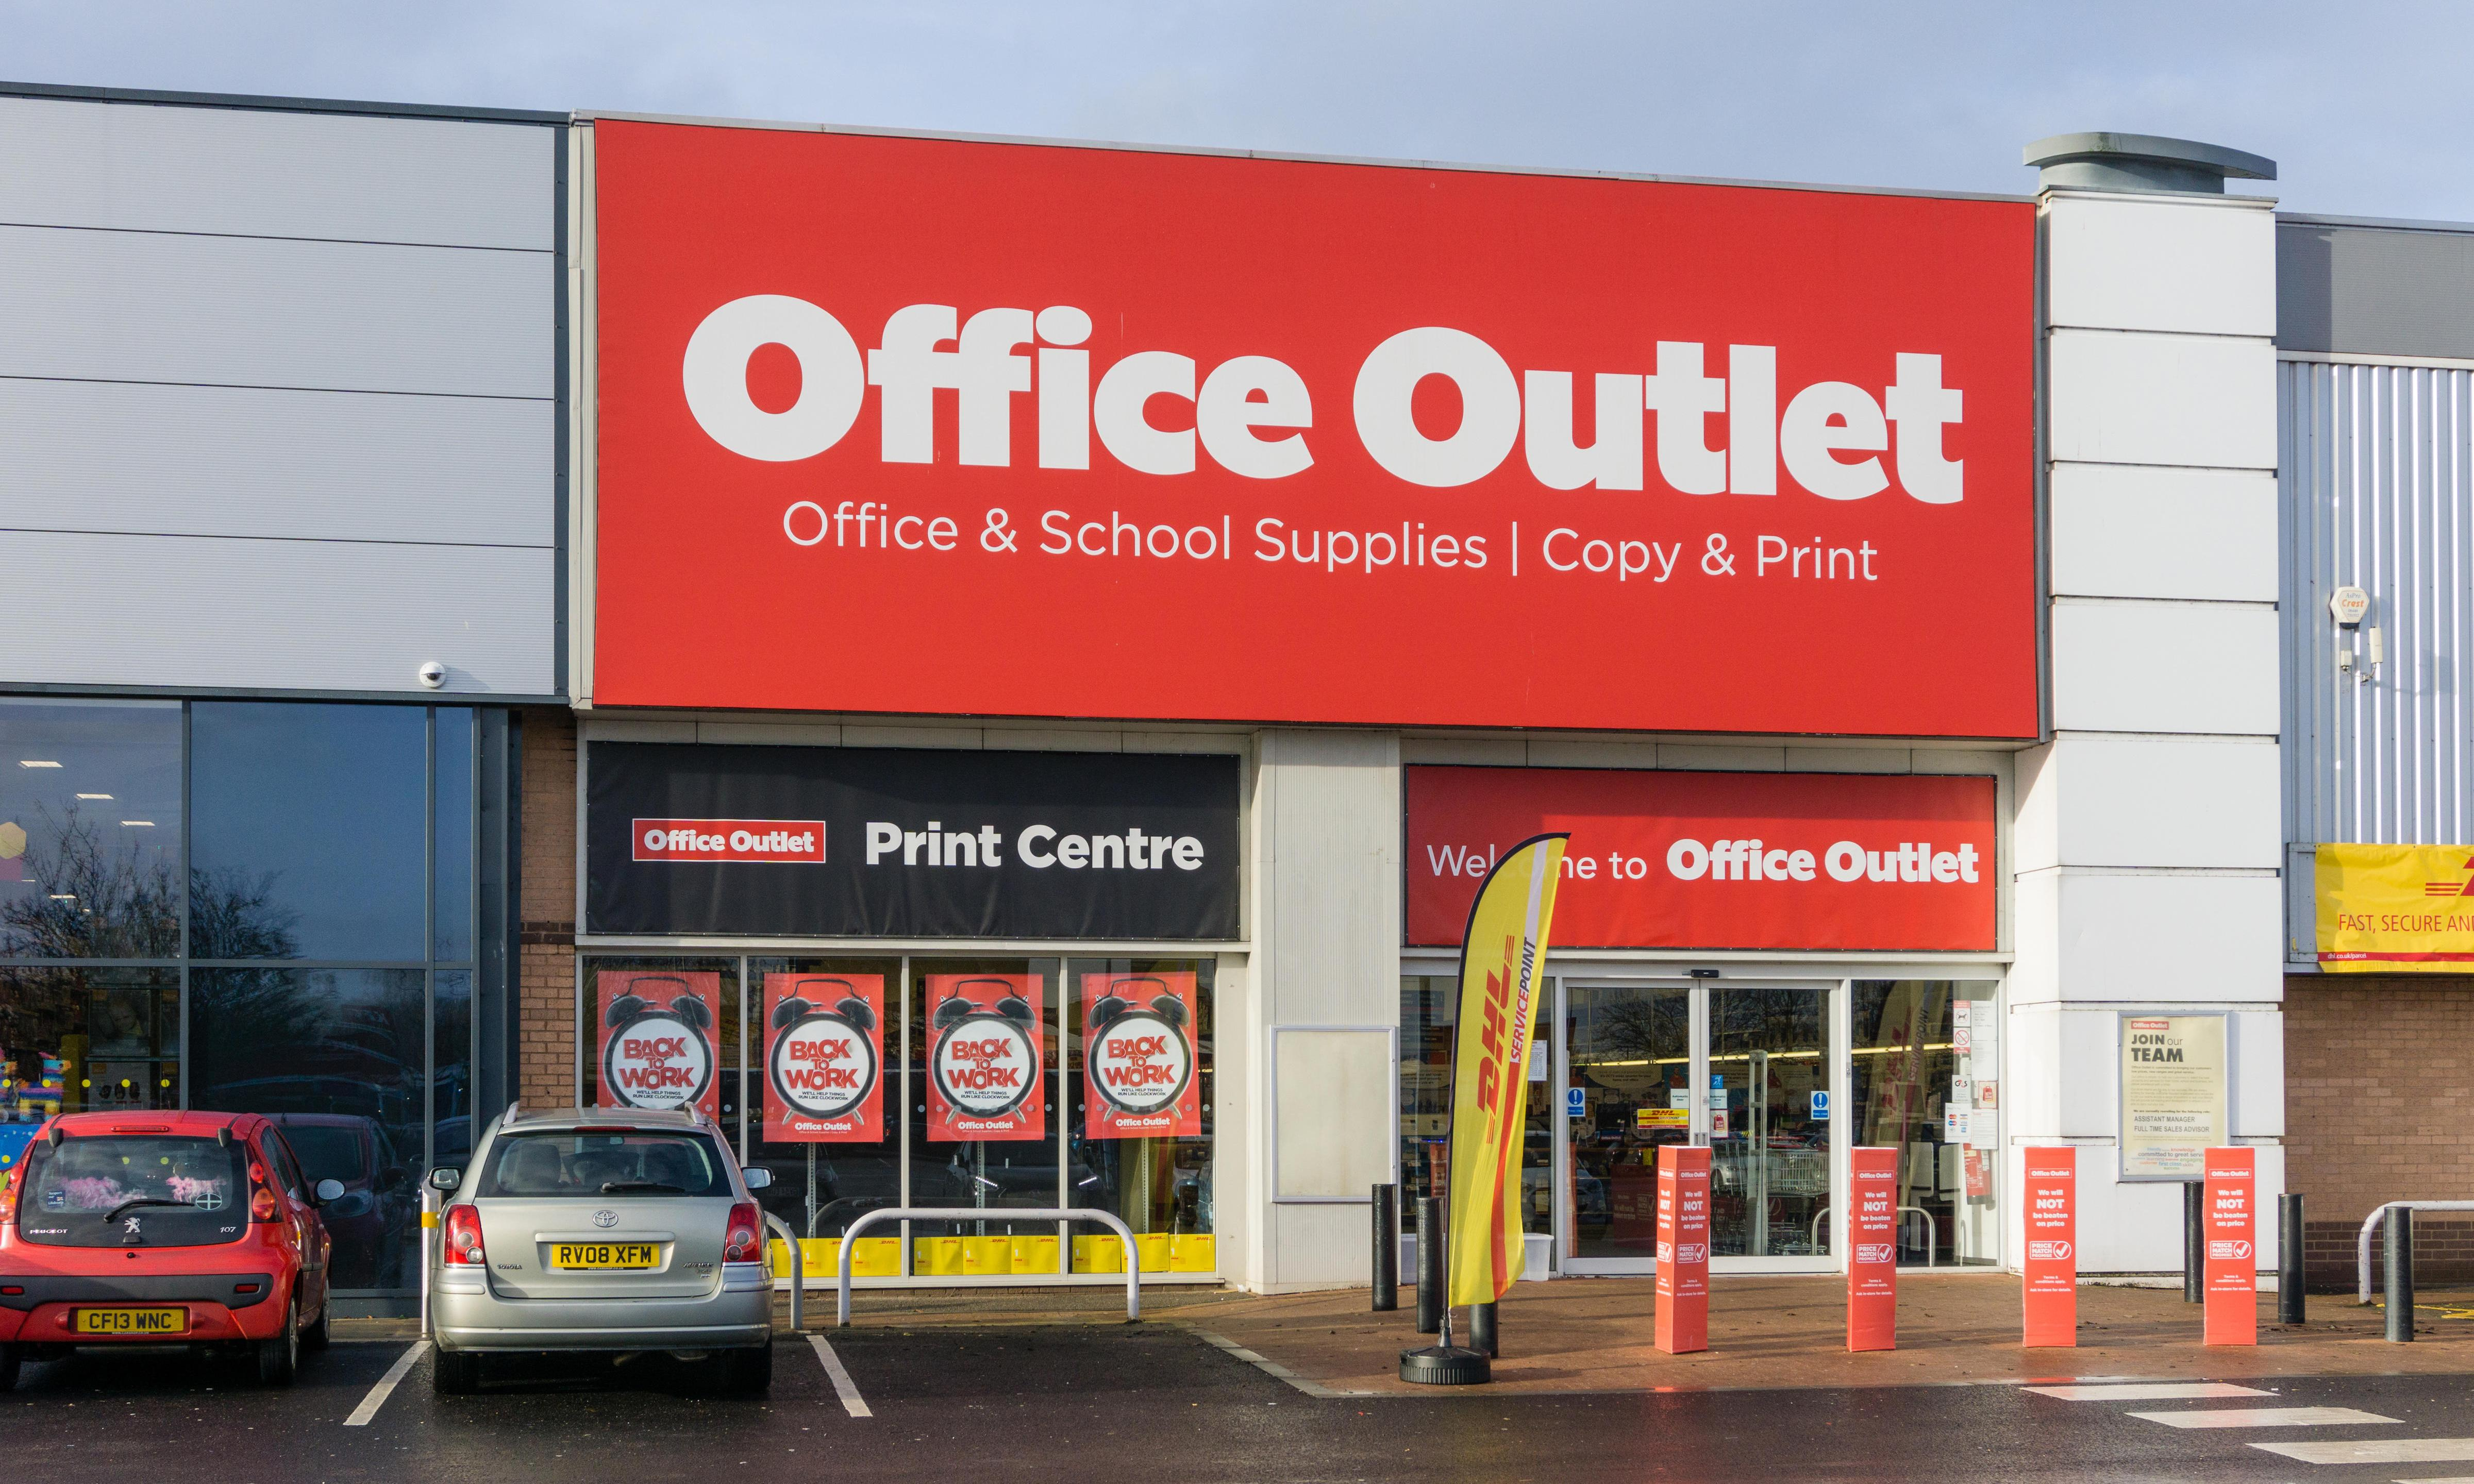 Office Outlet is latest retailer to go into administration